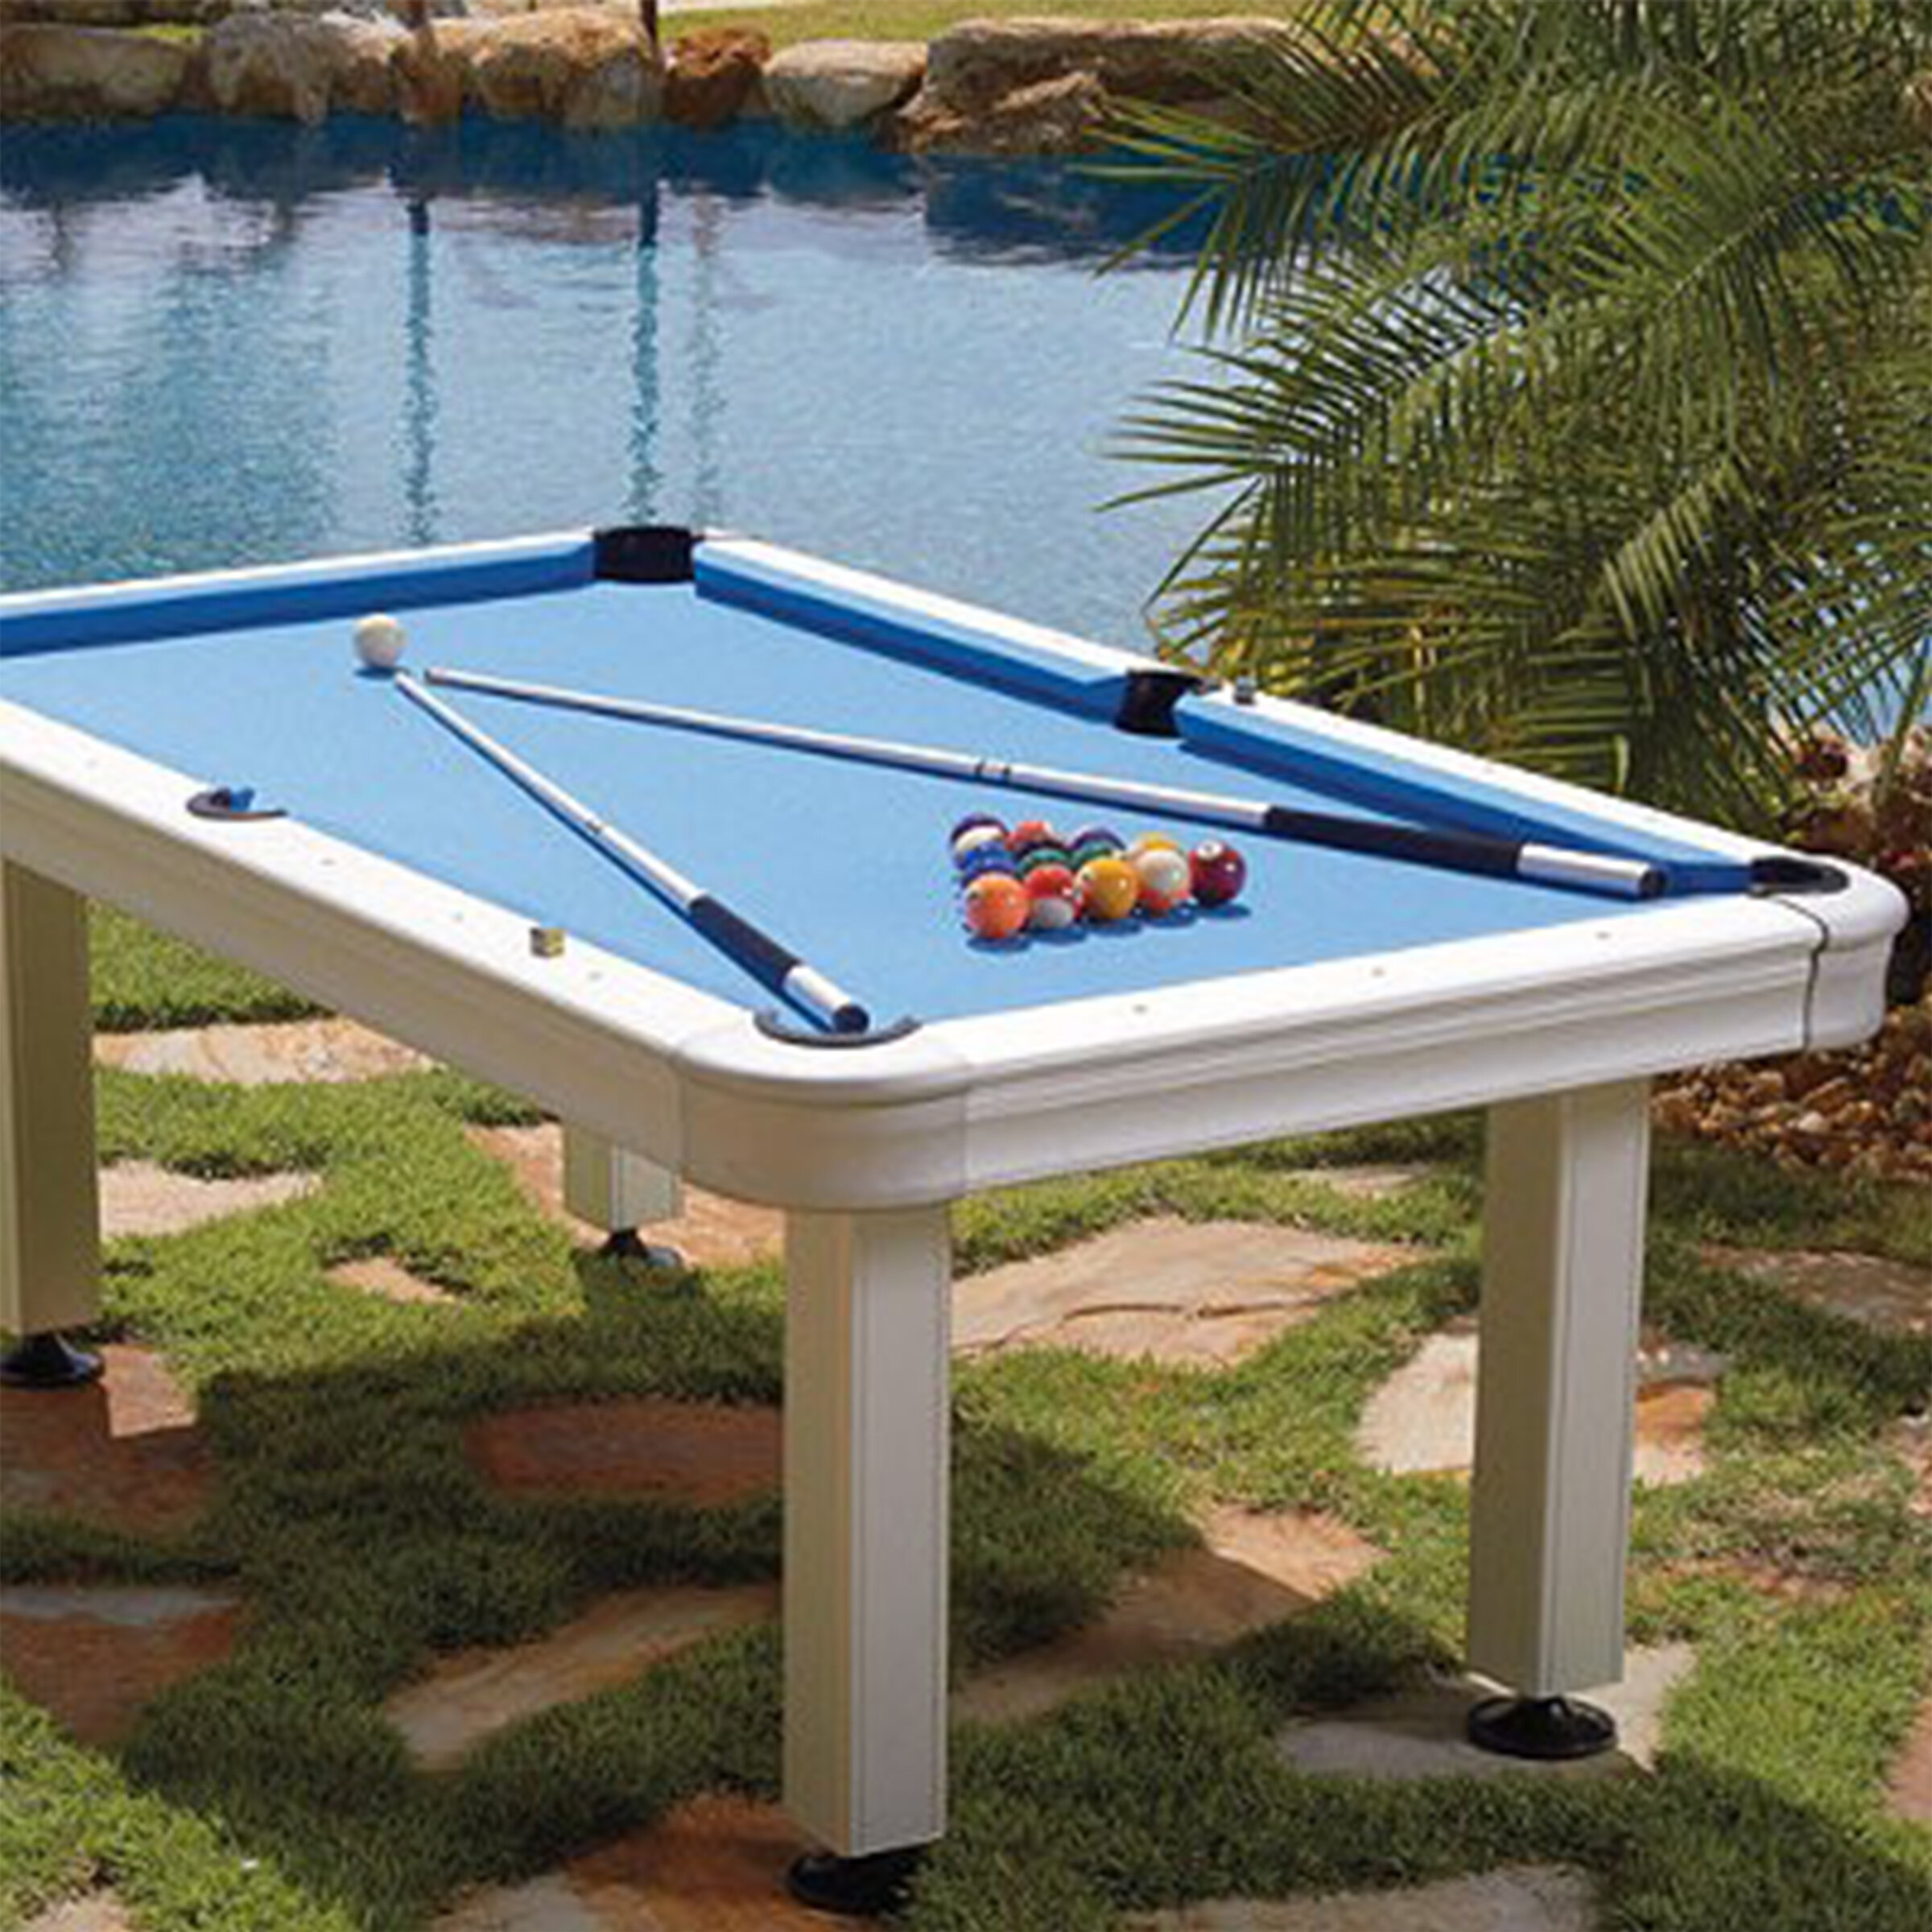 Imperial International Imperial 7' Slate Pool Table & Reviews